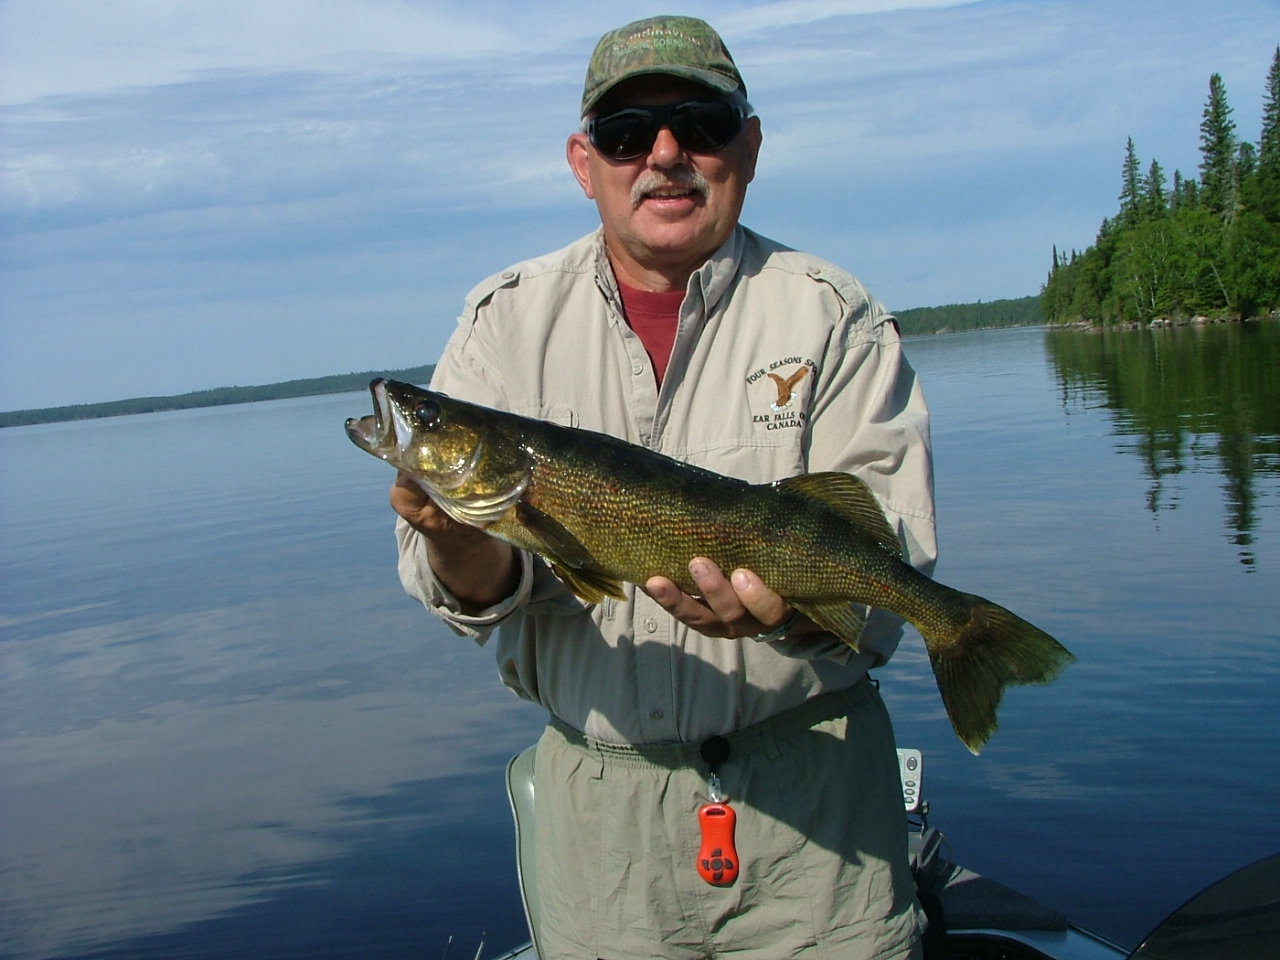 Eagle falls lodge red lake and parker lake fishing report for Red lake fishing